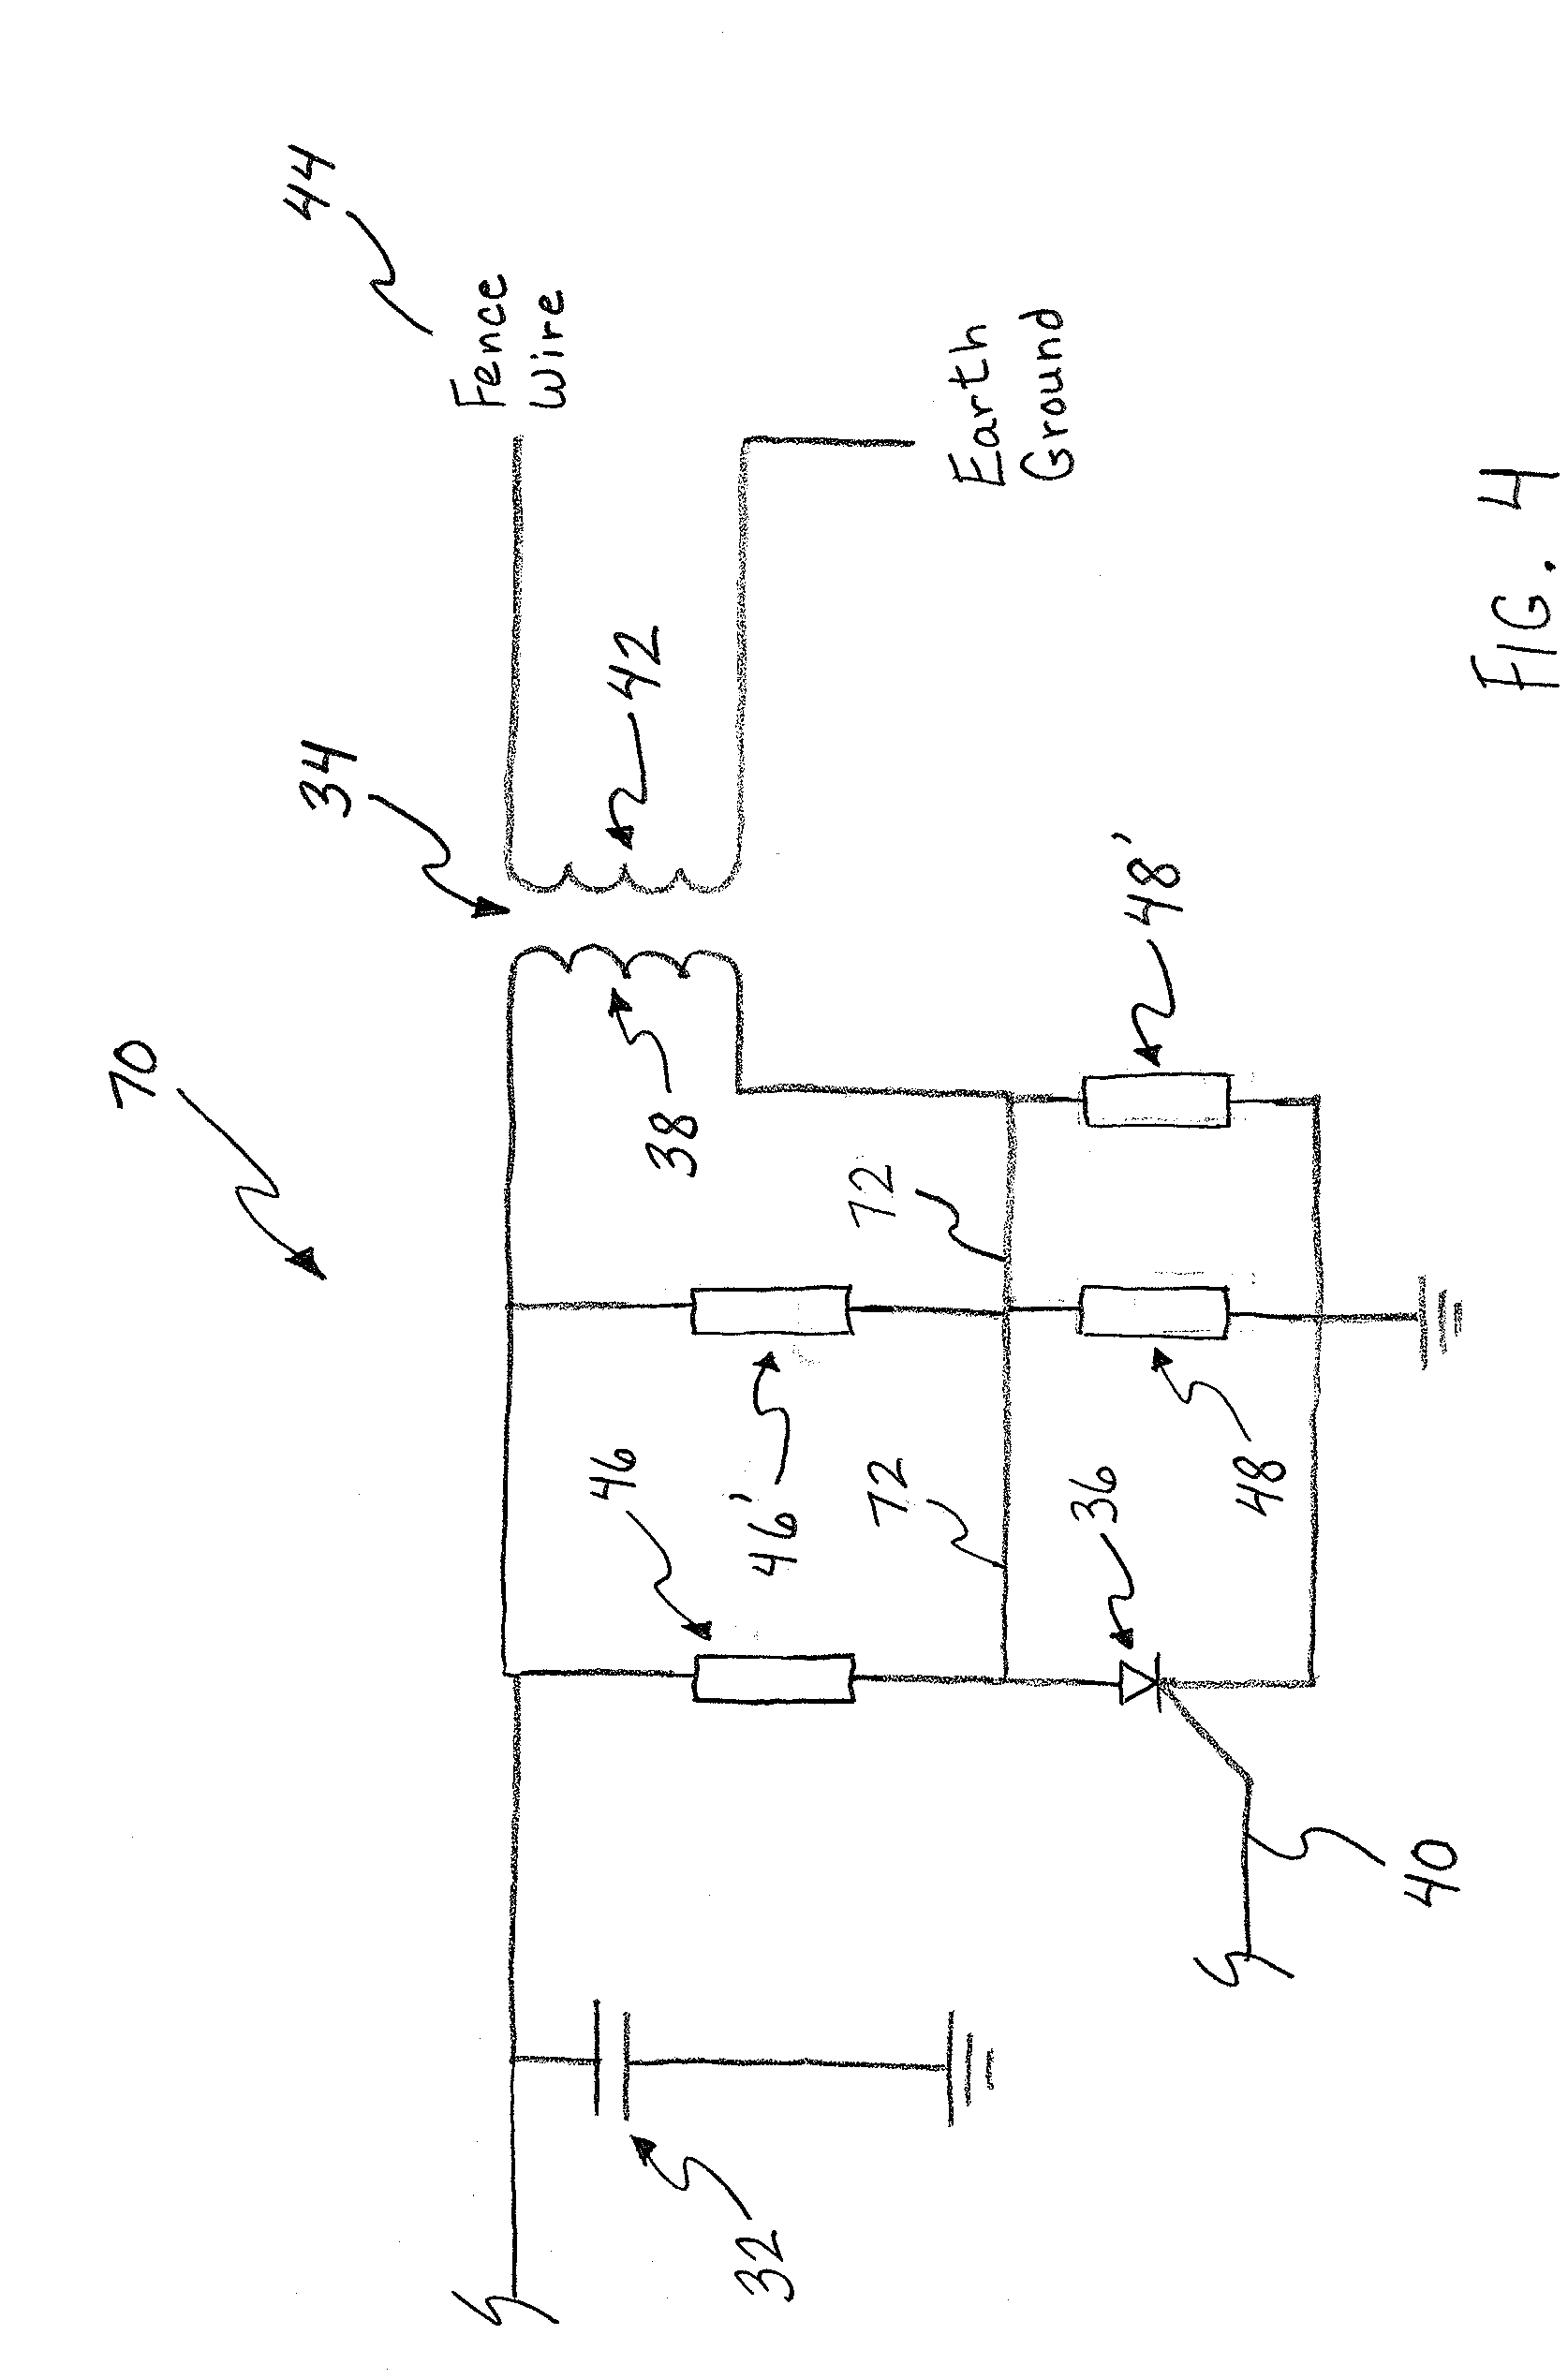 patent us20090002912 - electric fence energizer lightning protection